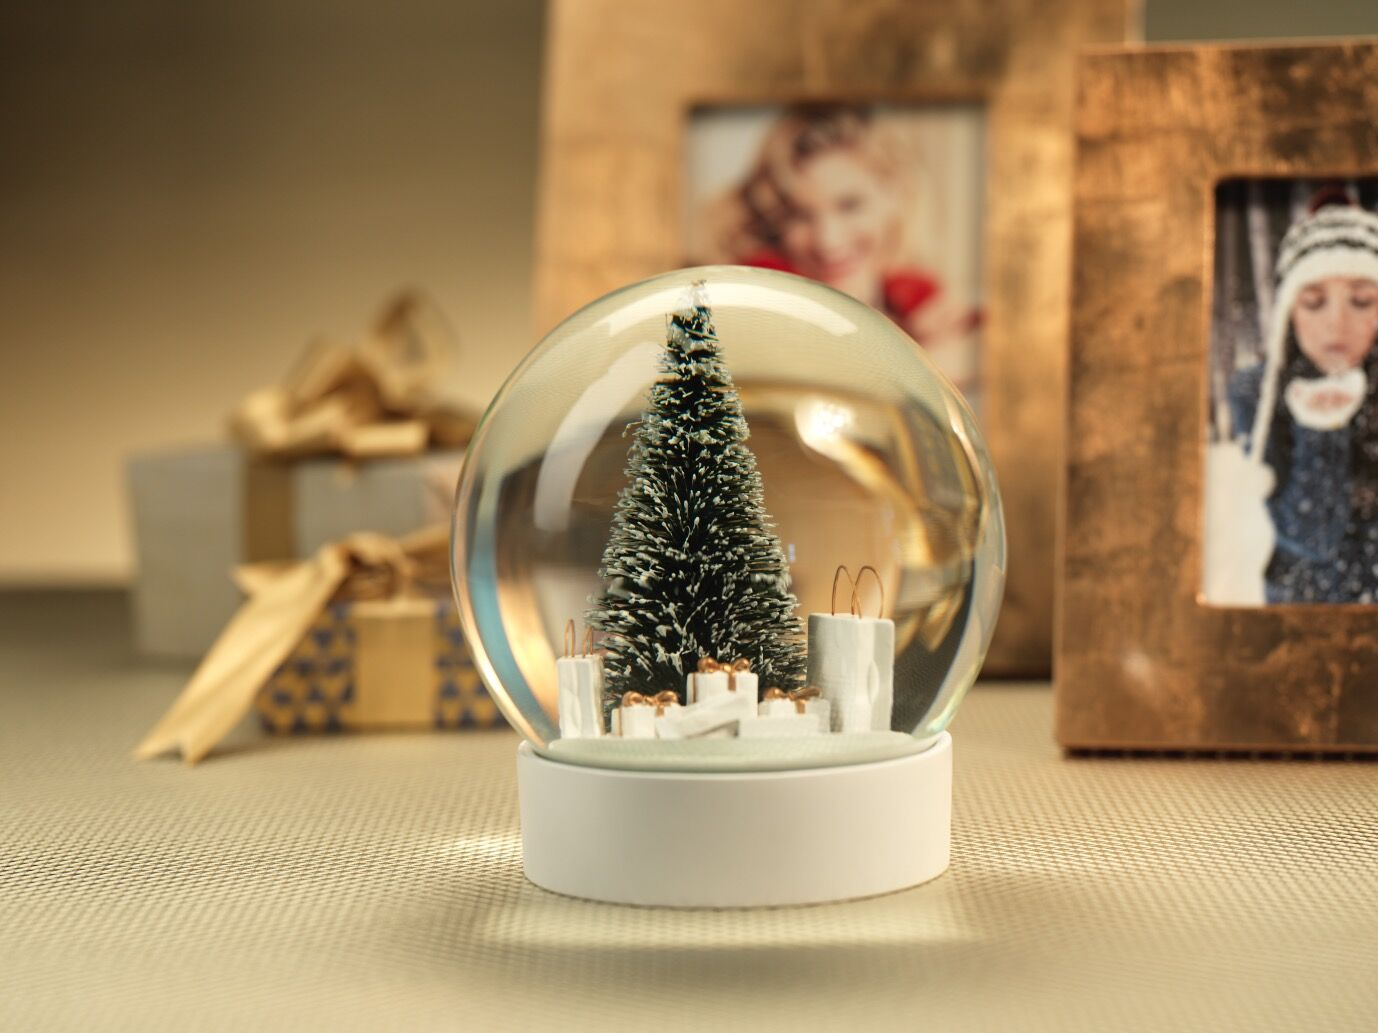 Snow globe with pine needle tree and gift bags